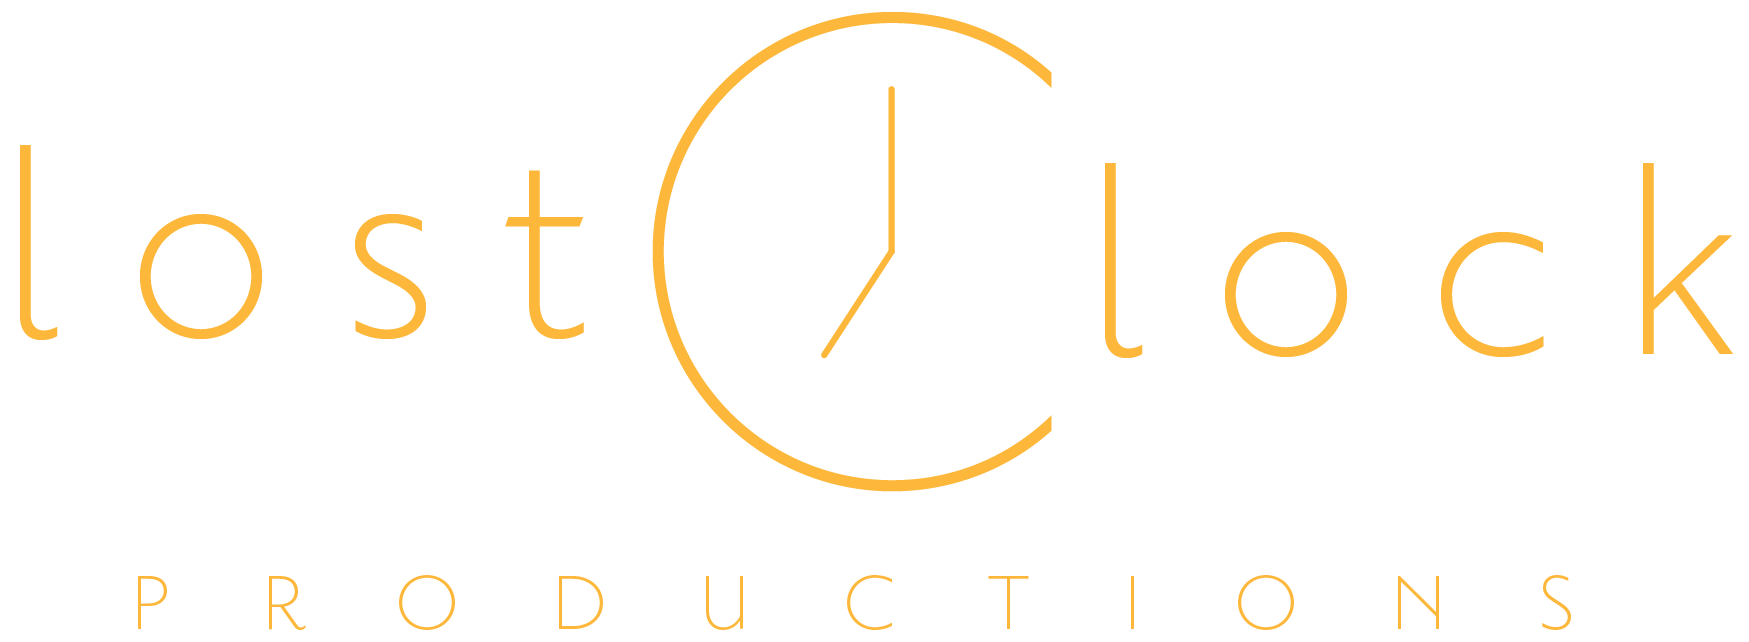 Lost Clock Productions Logo